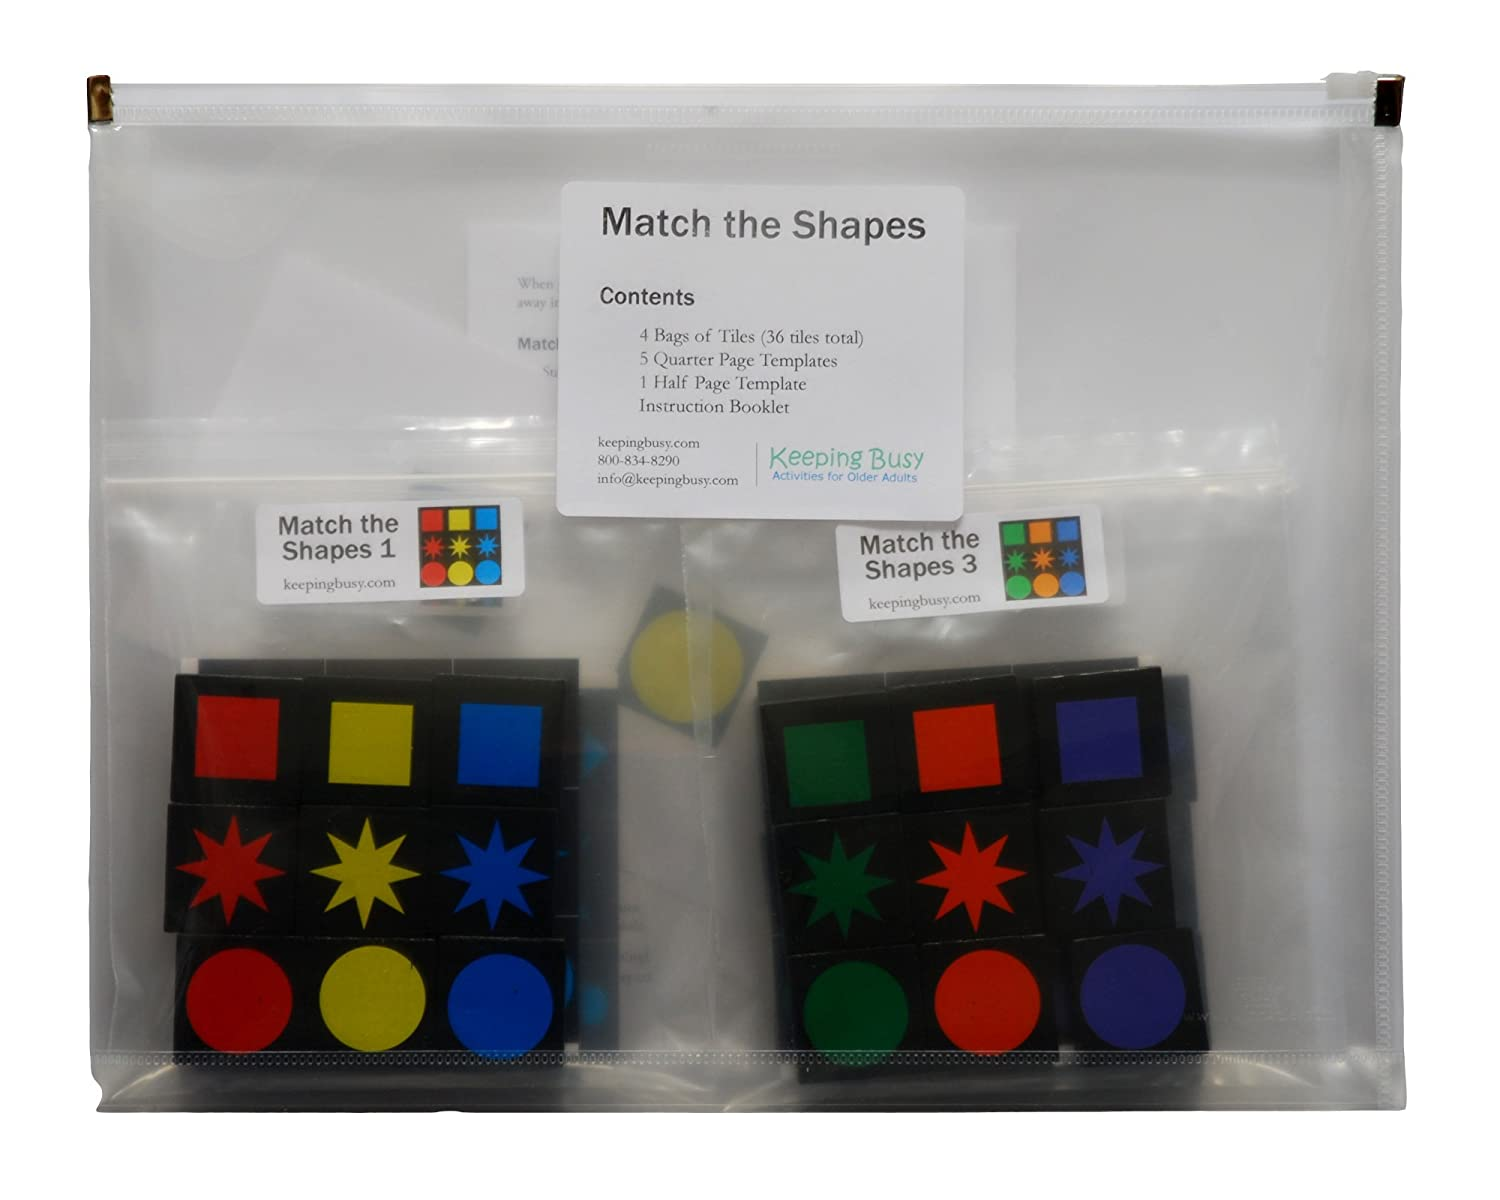 Amazon.com: Match the Shapes Engaging Activity for Dementia and ...